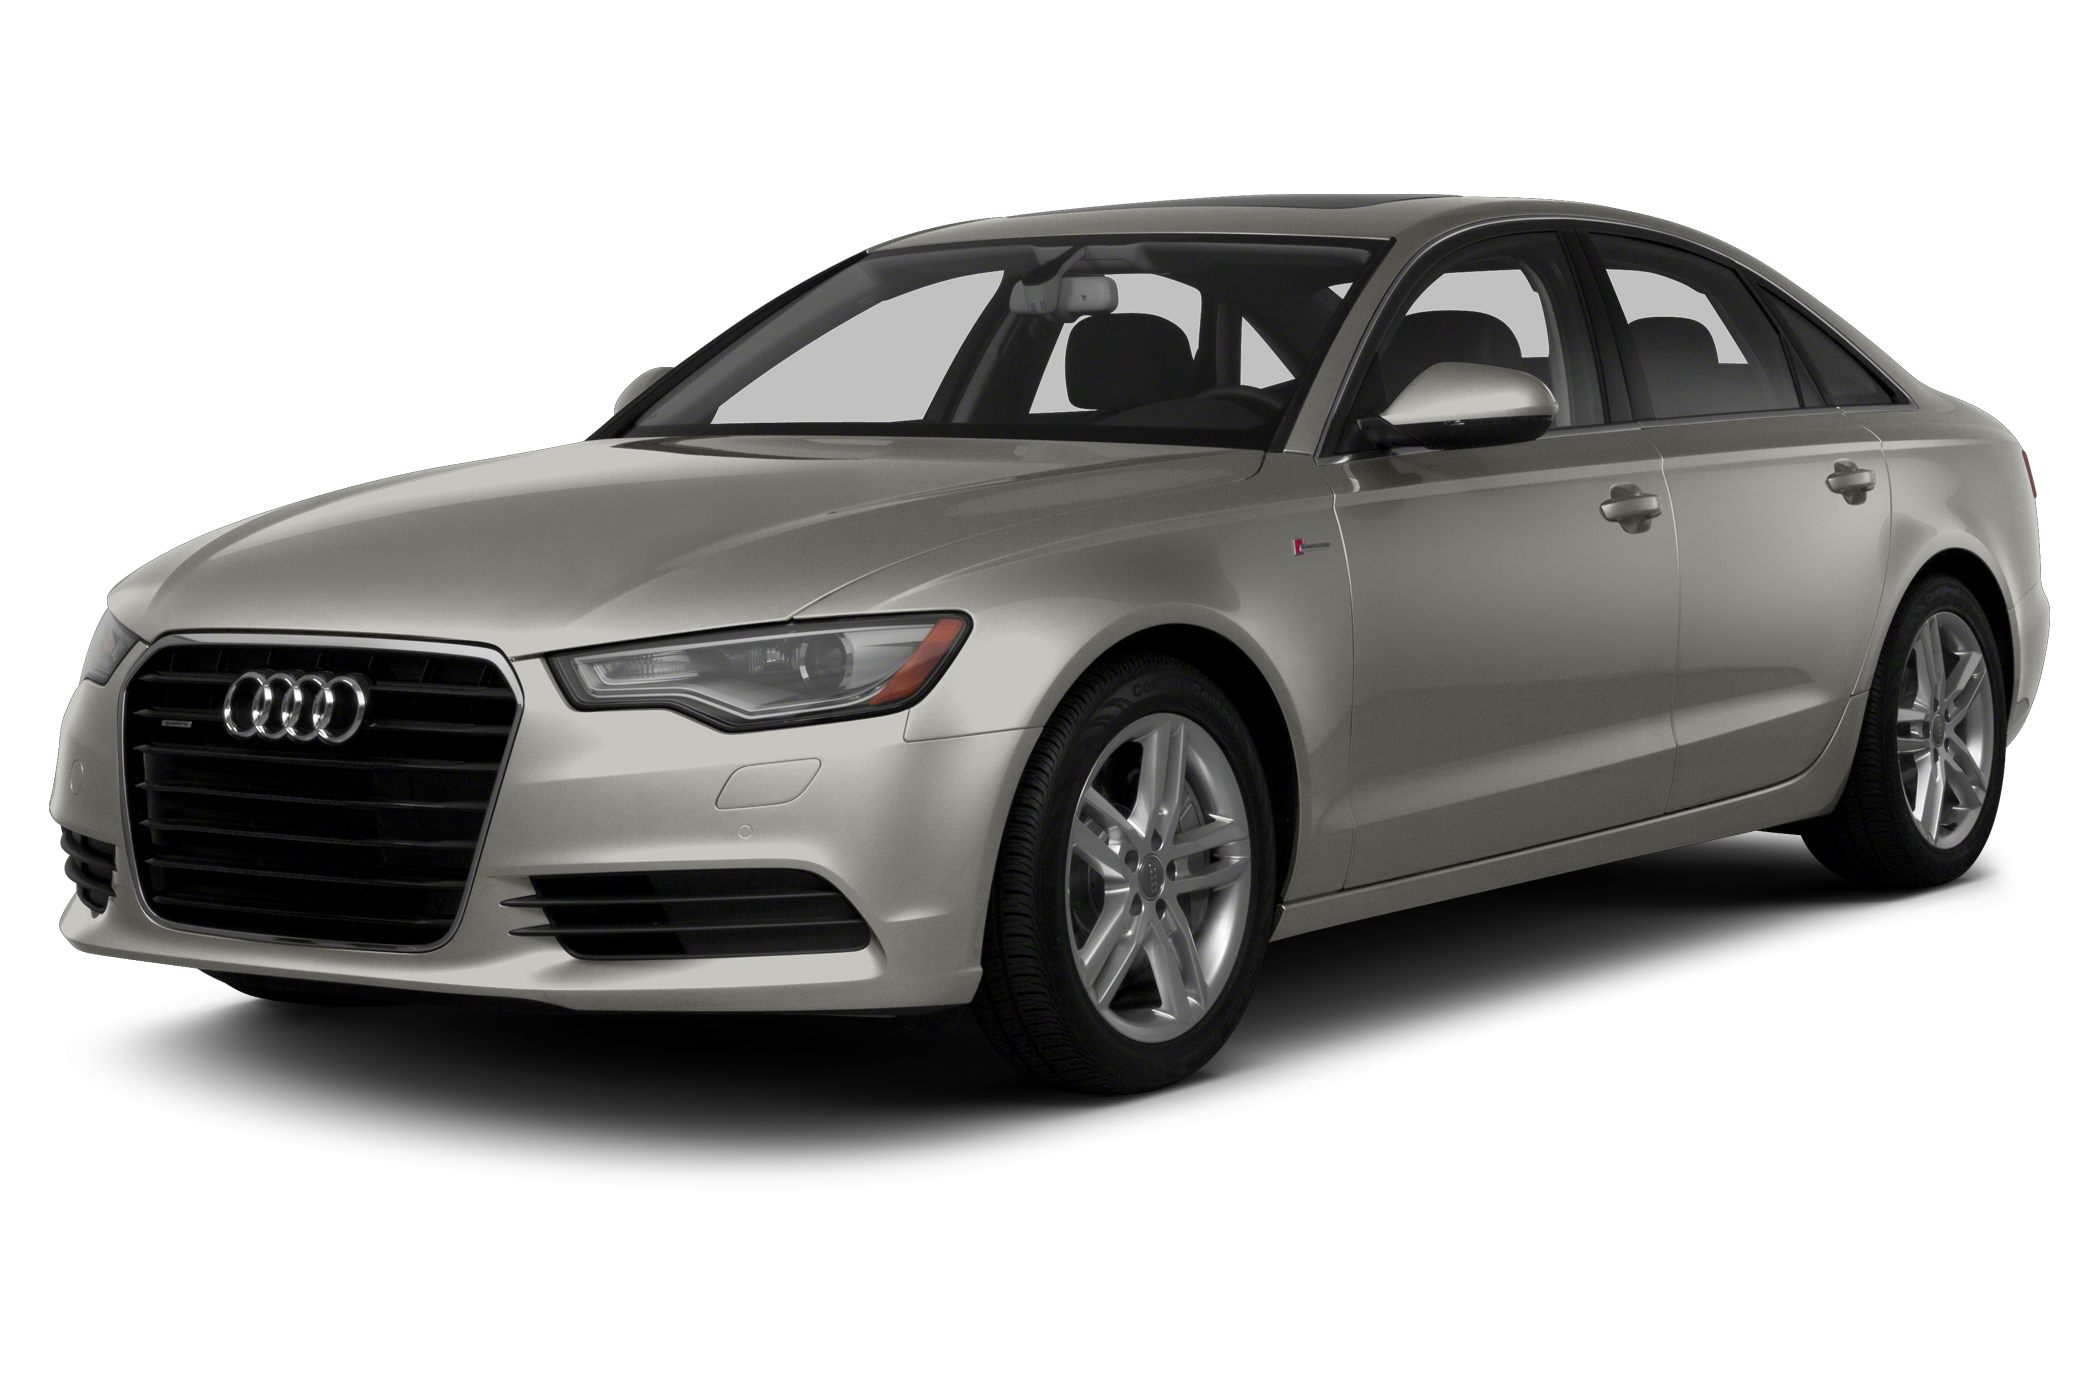 2013 Audi A6 2 0T Premium 4dr All-wheel Drive quattro Sedan Specs and Prices